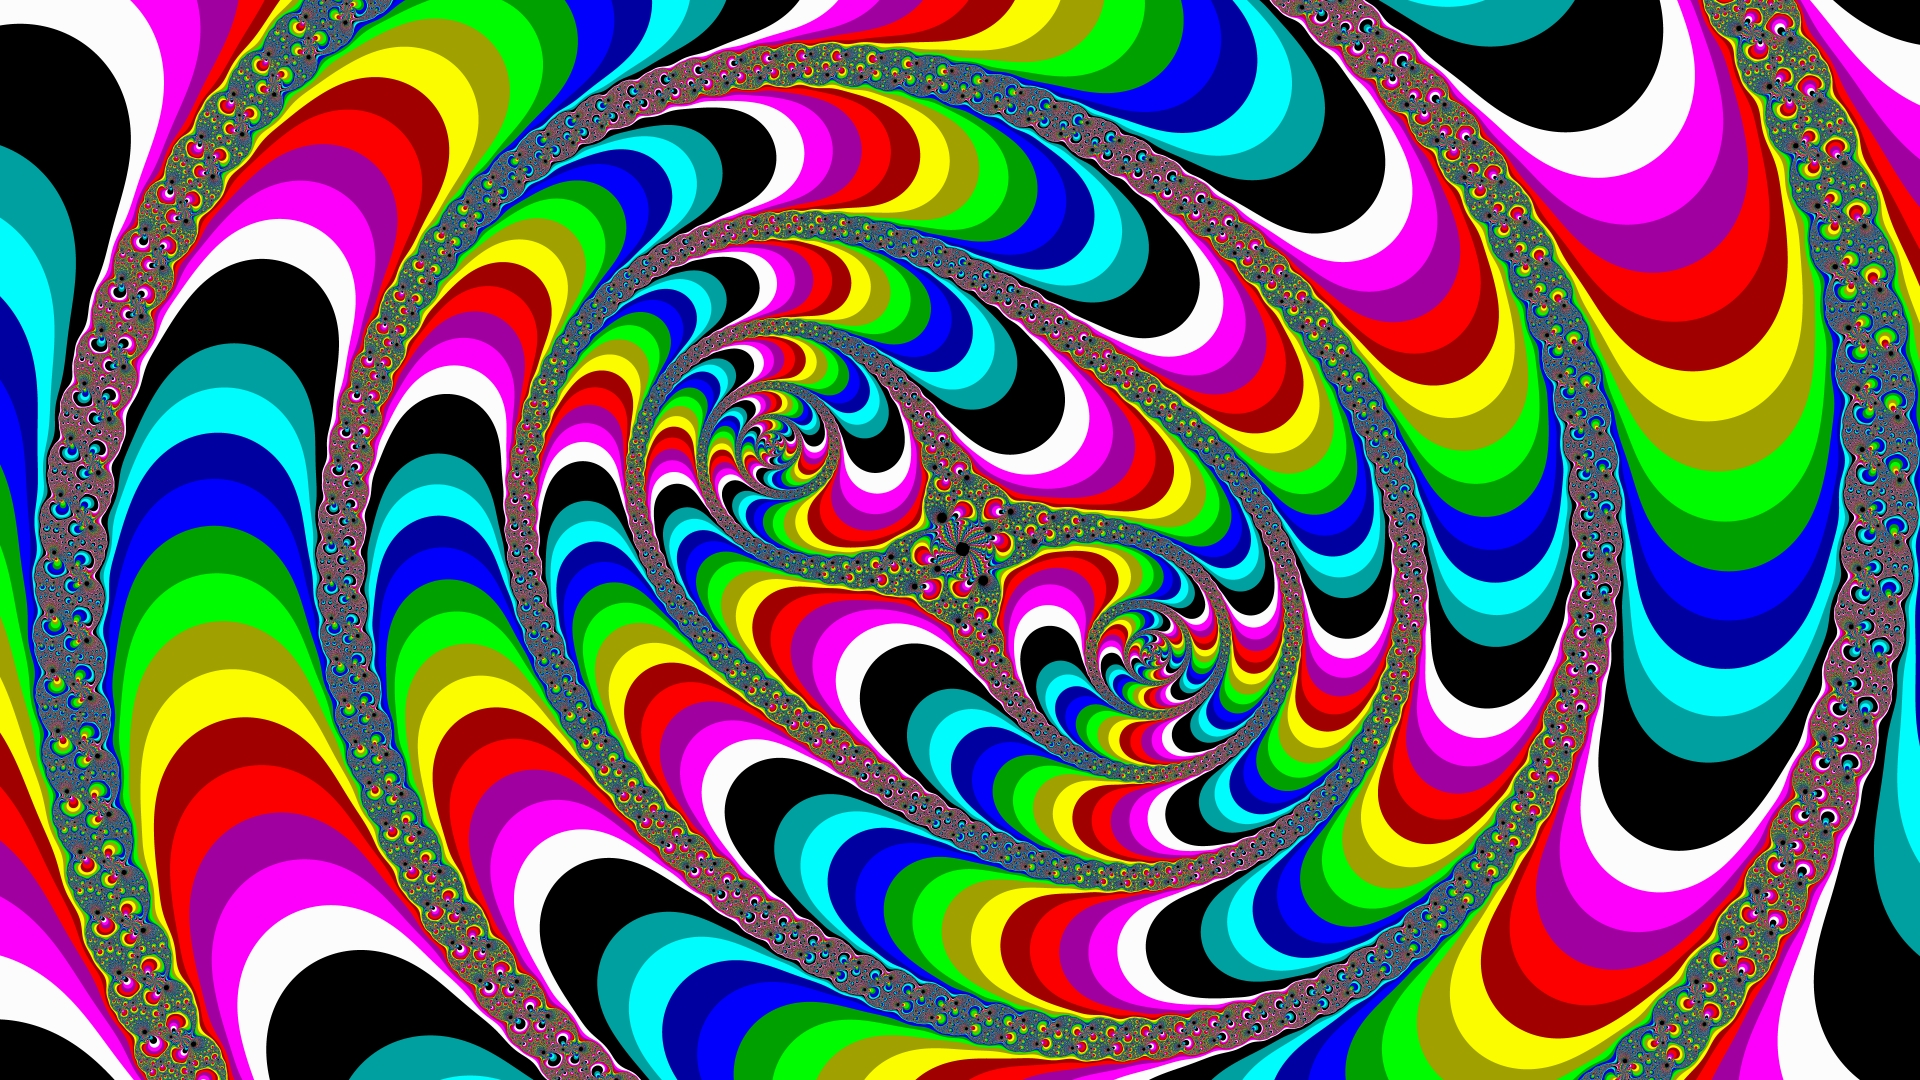 Abstract Psychedelic Wallpapers 1920x1080